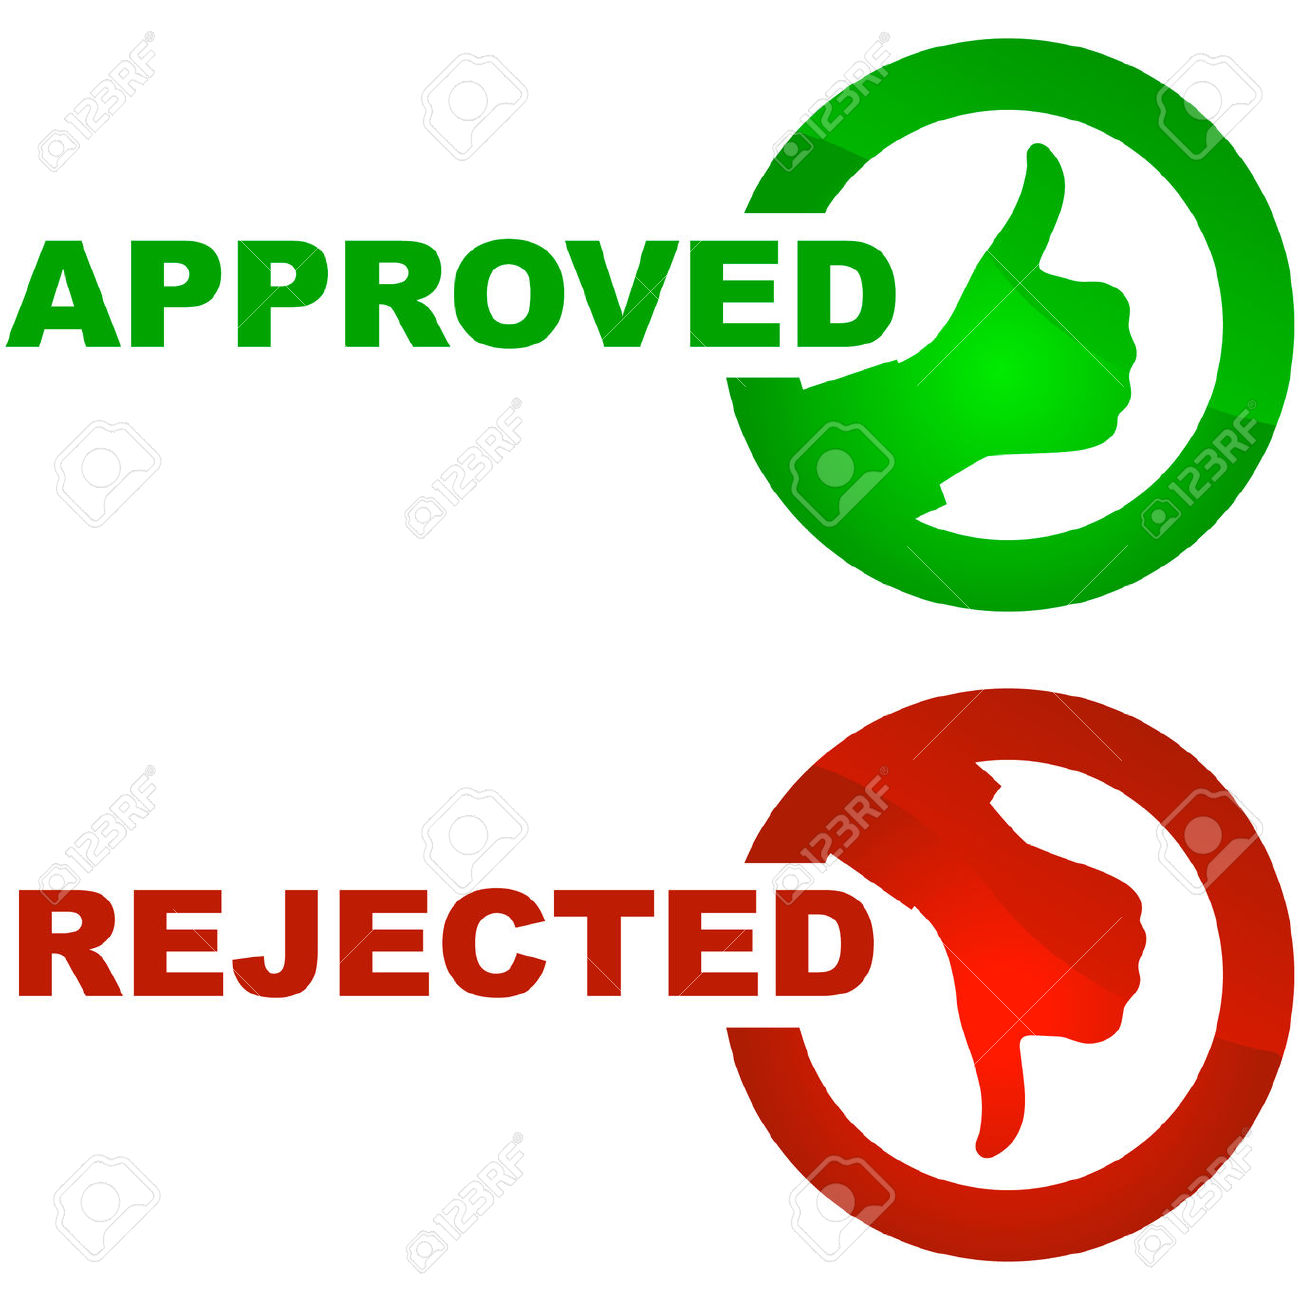 Approved and rejected icons..